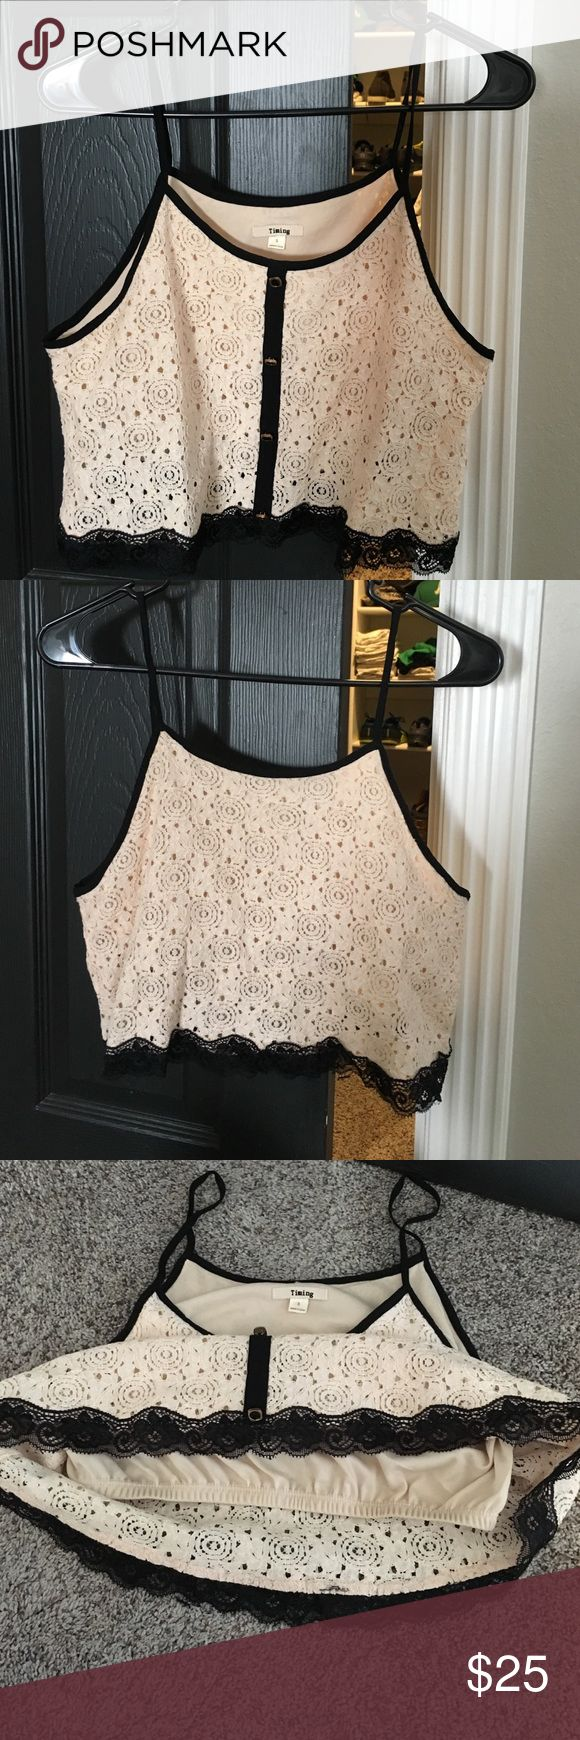 Cute lace cream crop top w/built in bra Brand new, white and black lace Tops Crop Tops